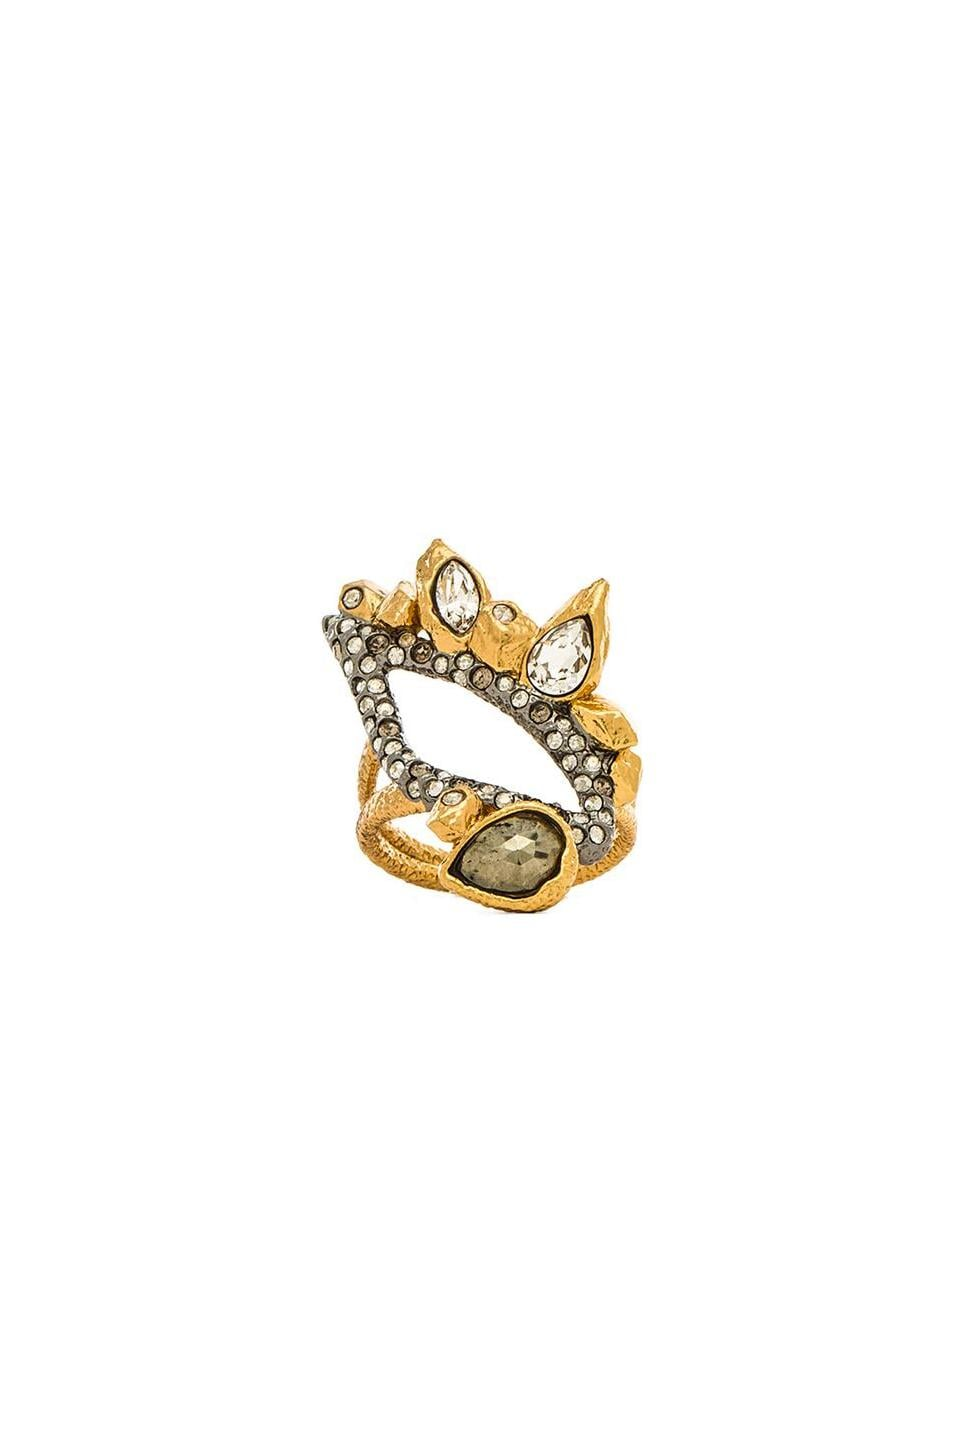 Alexis Bittar Rocky Ring in Gold & Ruthenium